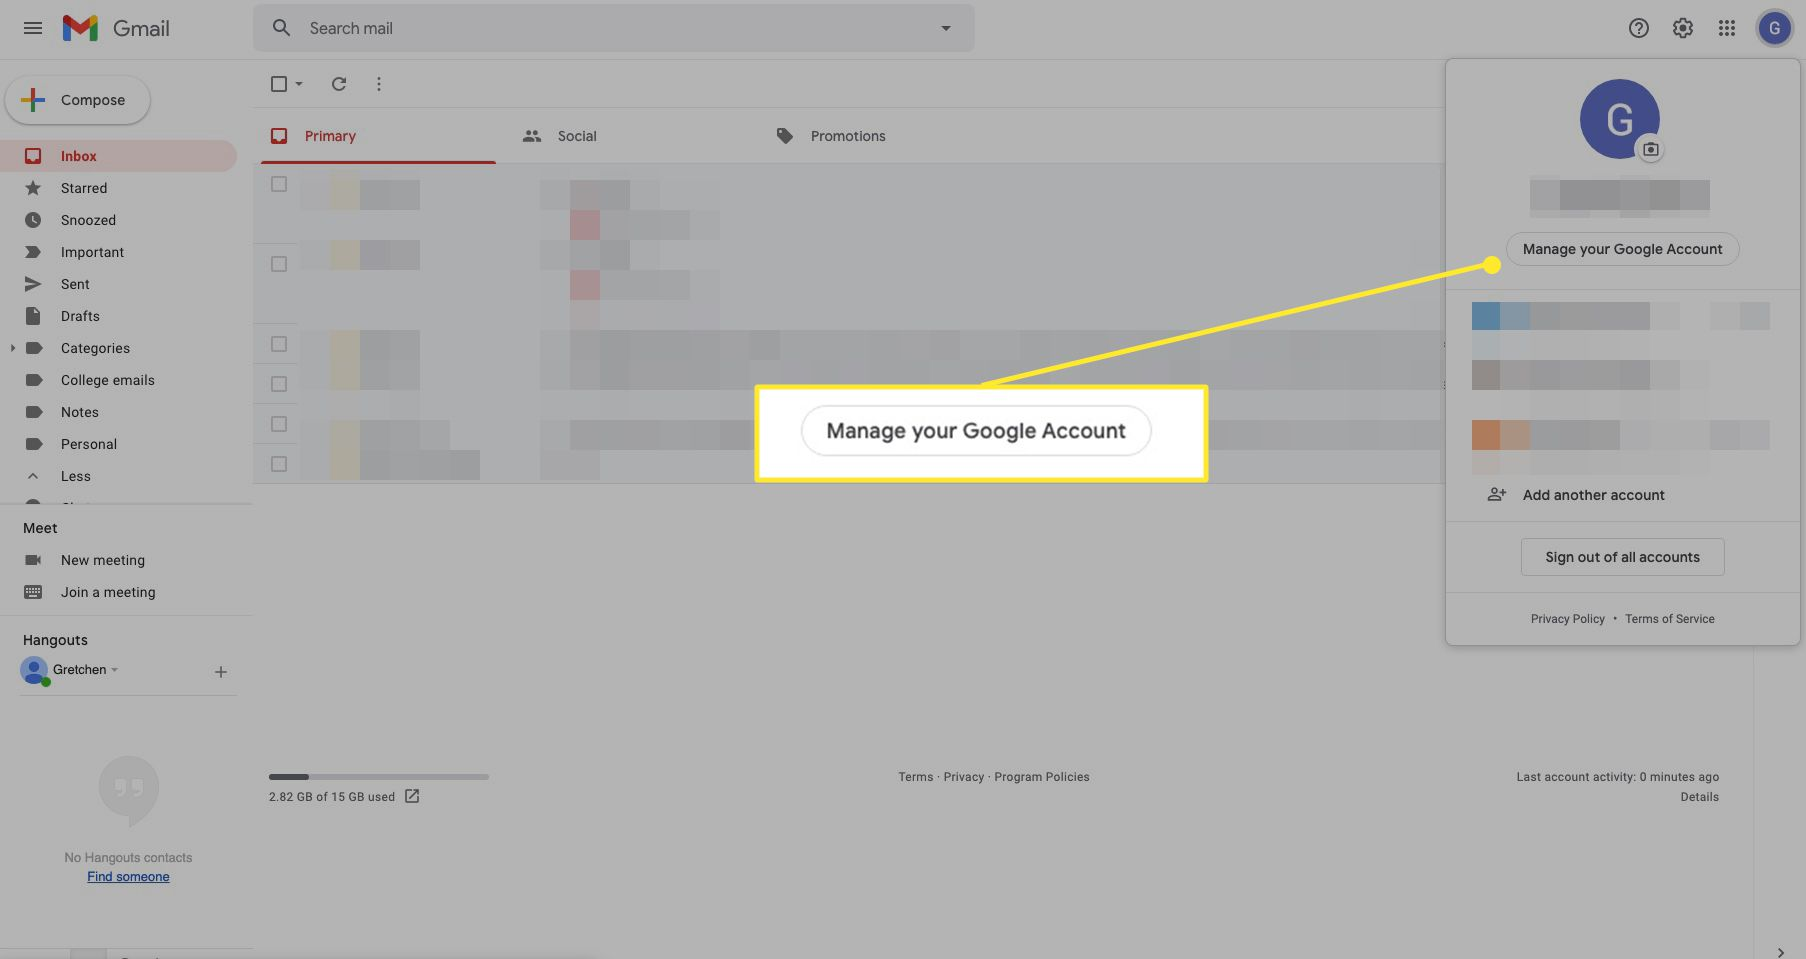 Google settings with Manage your Google Account highlighted